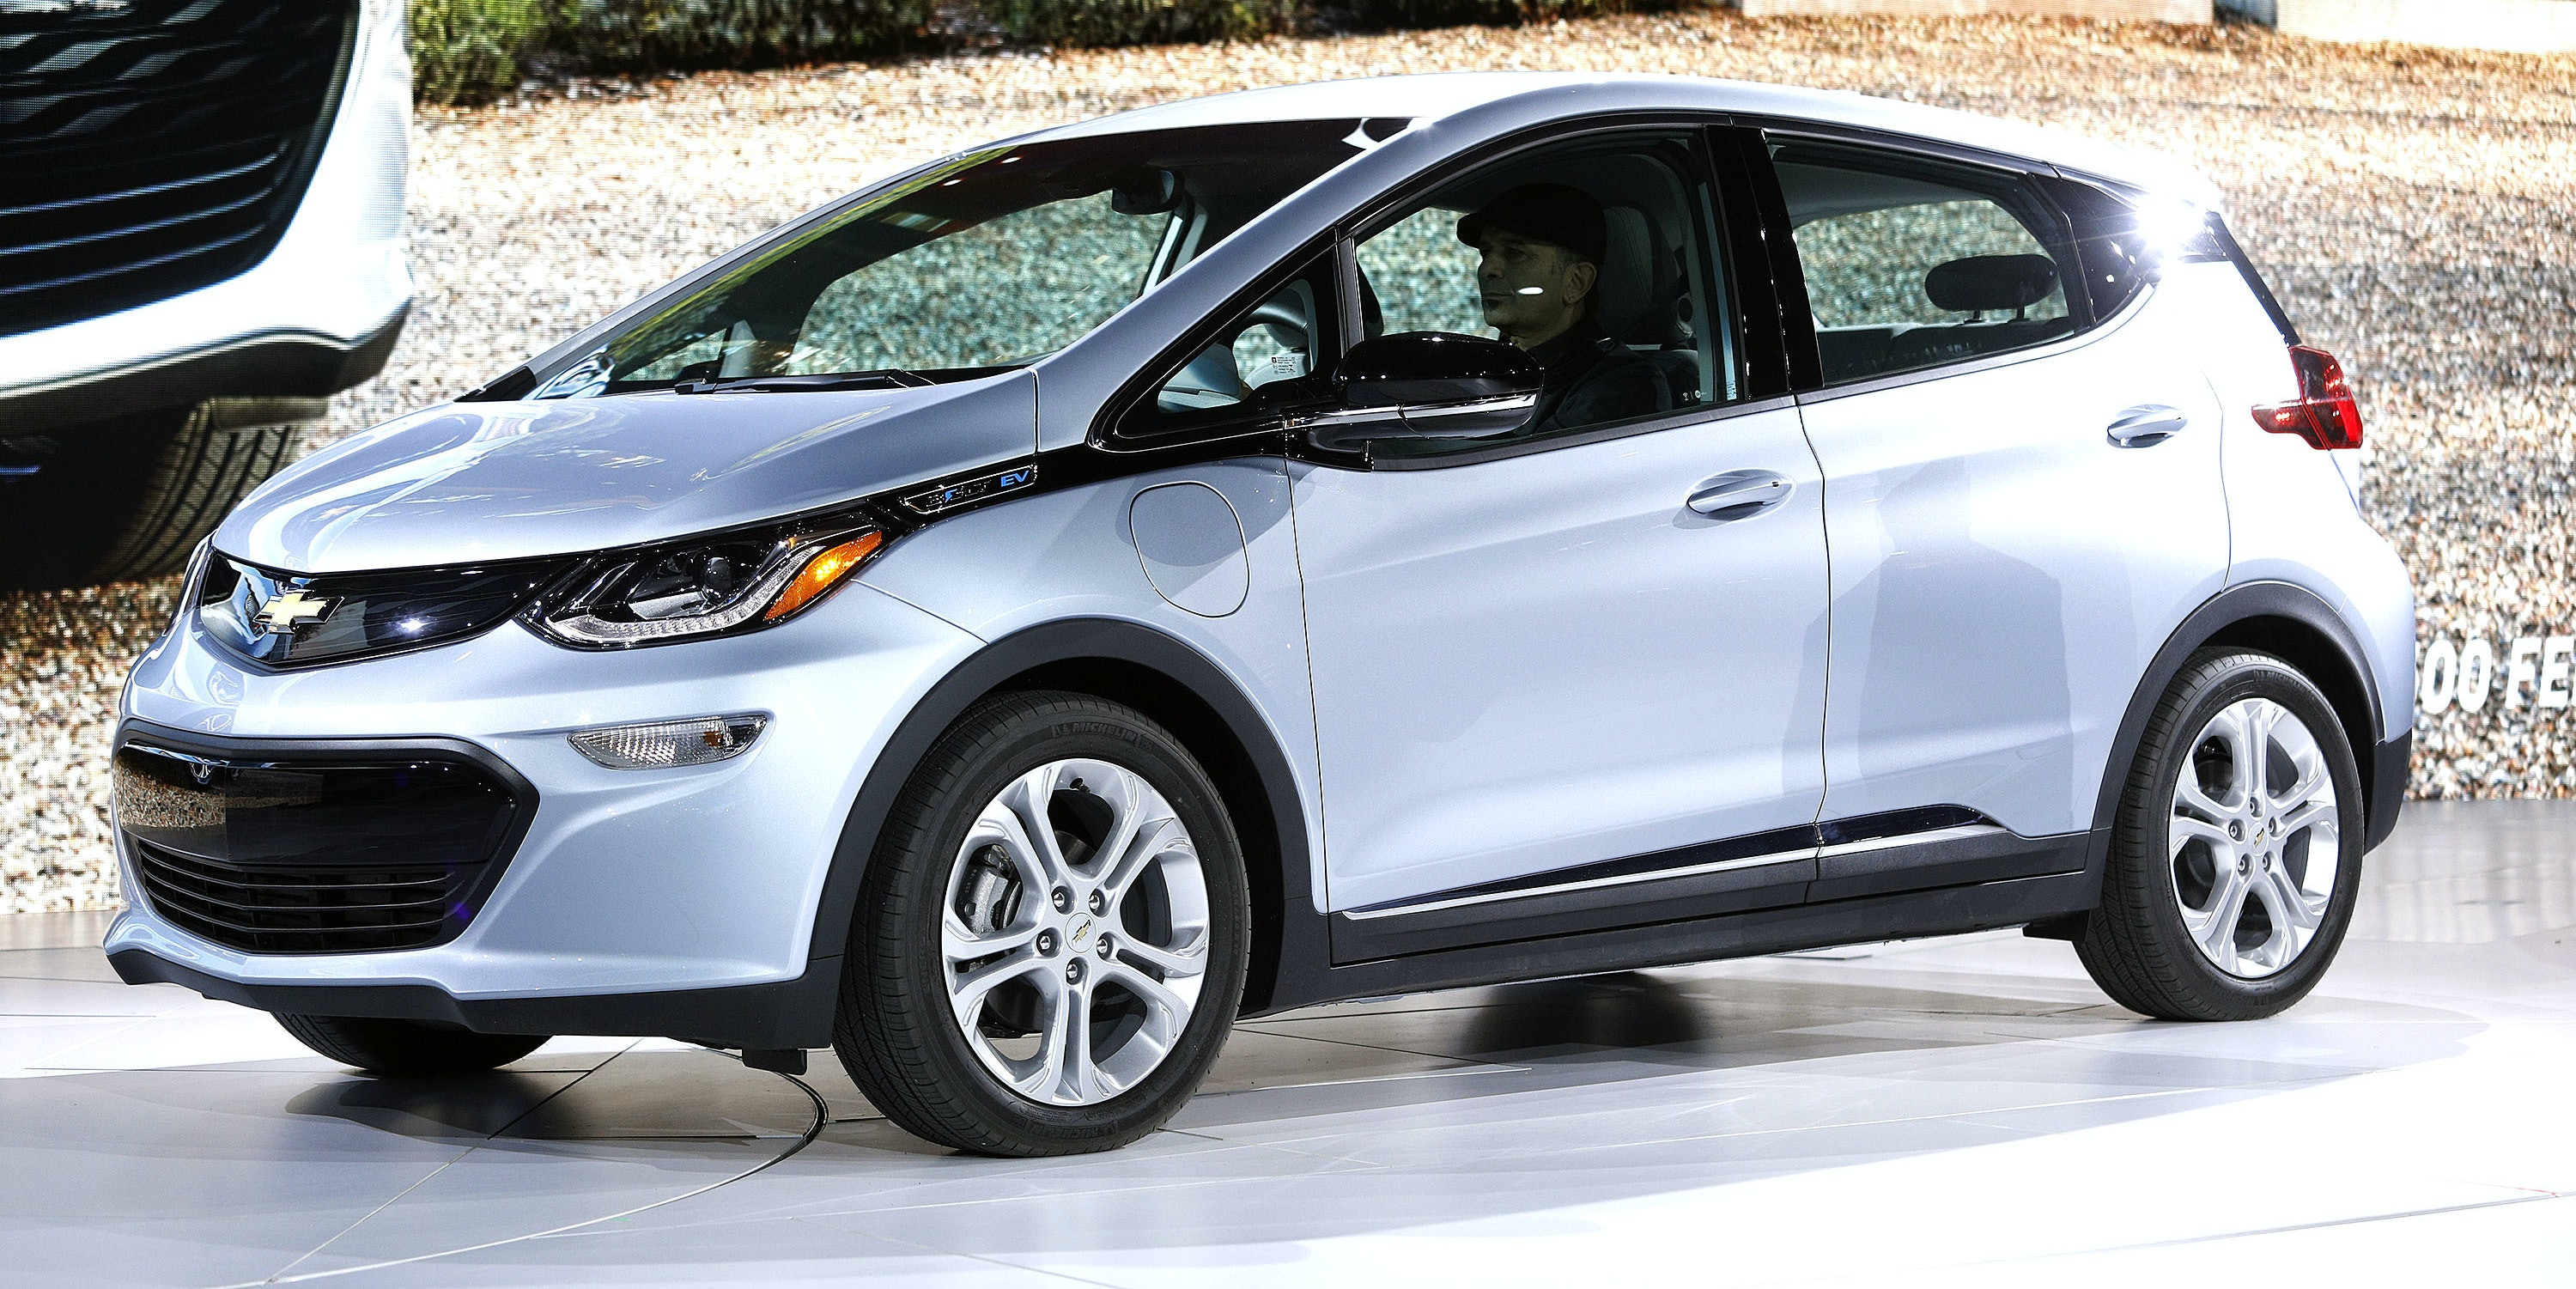 DETROIT, MI - JANUARY 9: The all-electric Chevrolet Bolt EV is shown on stage after it won the Car of the Year Award at the 2017 North American International Auto Show on January 9, 2017 in Detroit, Michigan. Approximately 5000 journalists from around the world and nearly 800,000 people are expected to attend the NAIAS between January 8th and January 22nd to see the more than 750 vehicles and numerous interactive displays. (Photo by Bill Pugliano/Getty Images)